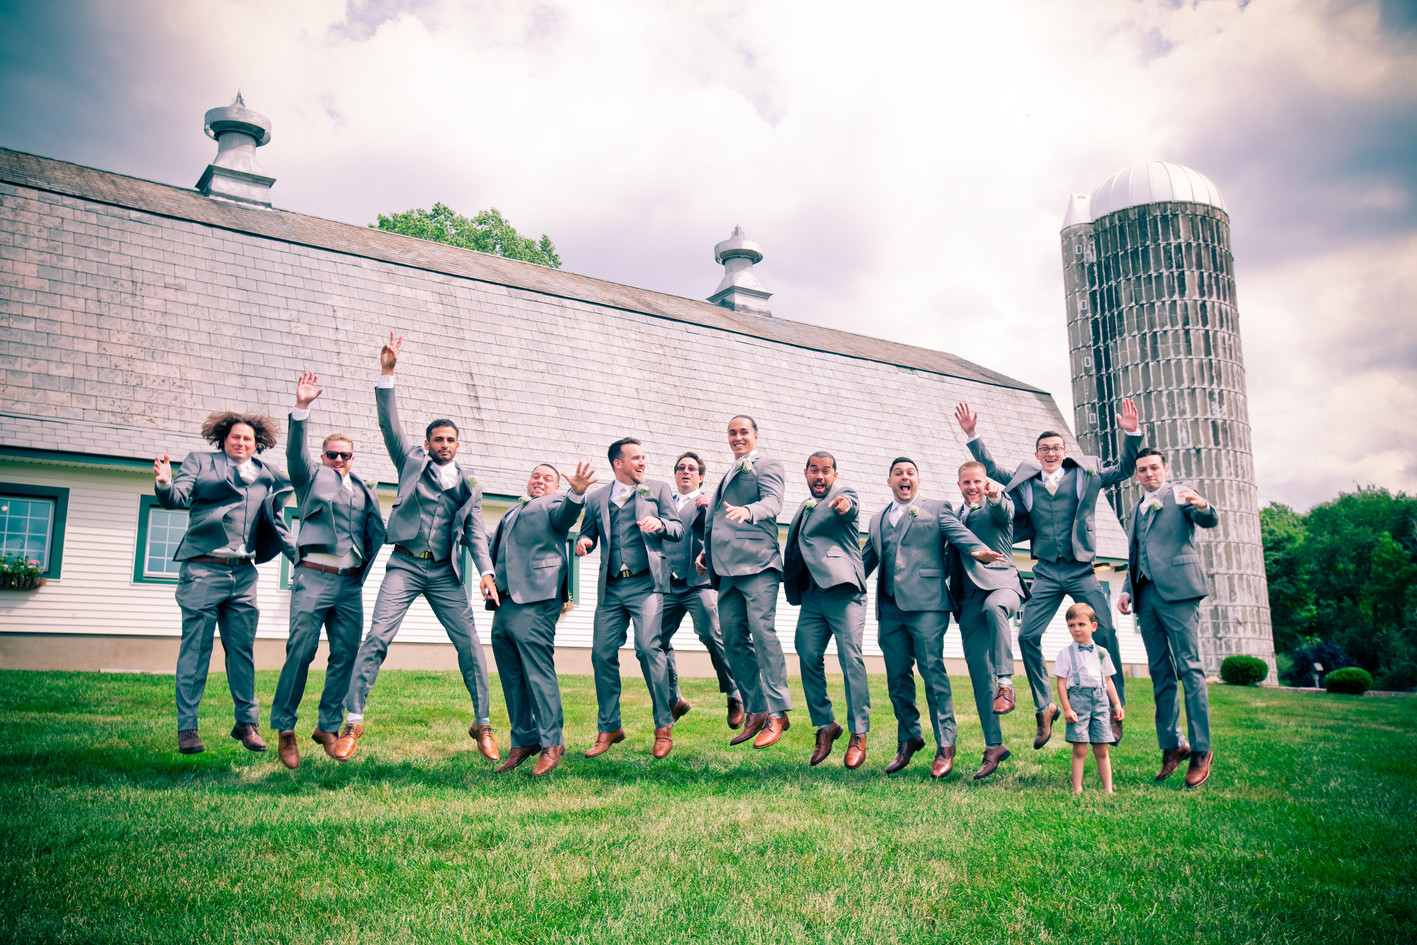 #NJwedding photo by Abella Studios